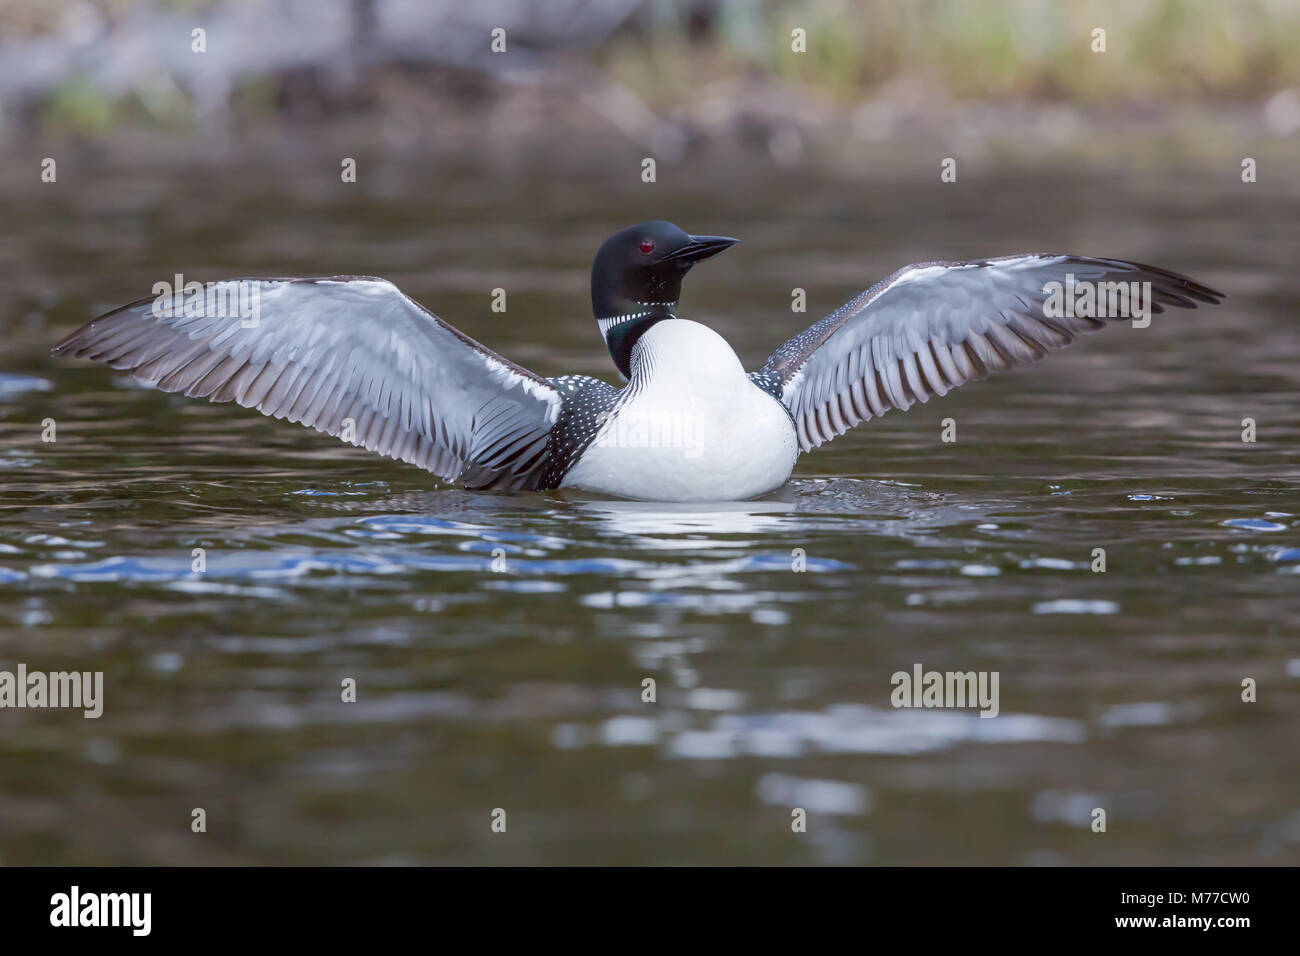 The Common loon, a wilderness icon, with wings fully out - Stock Image